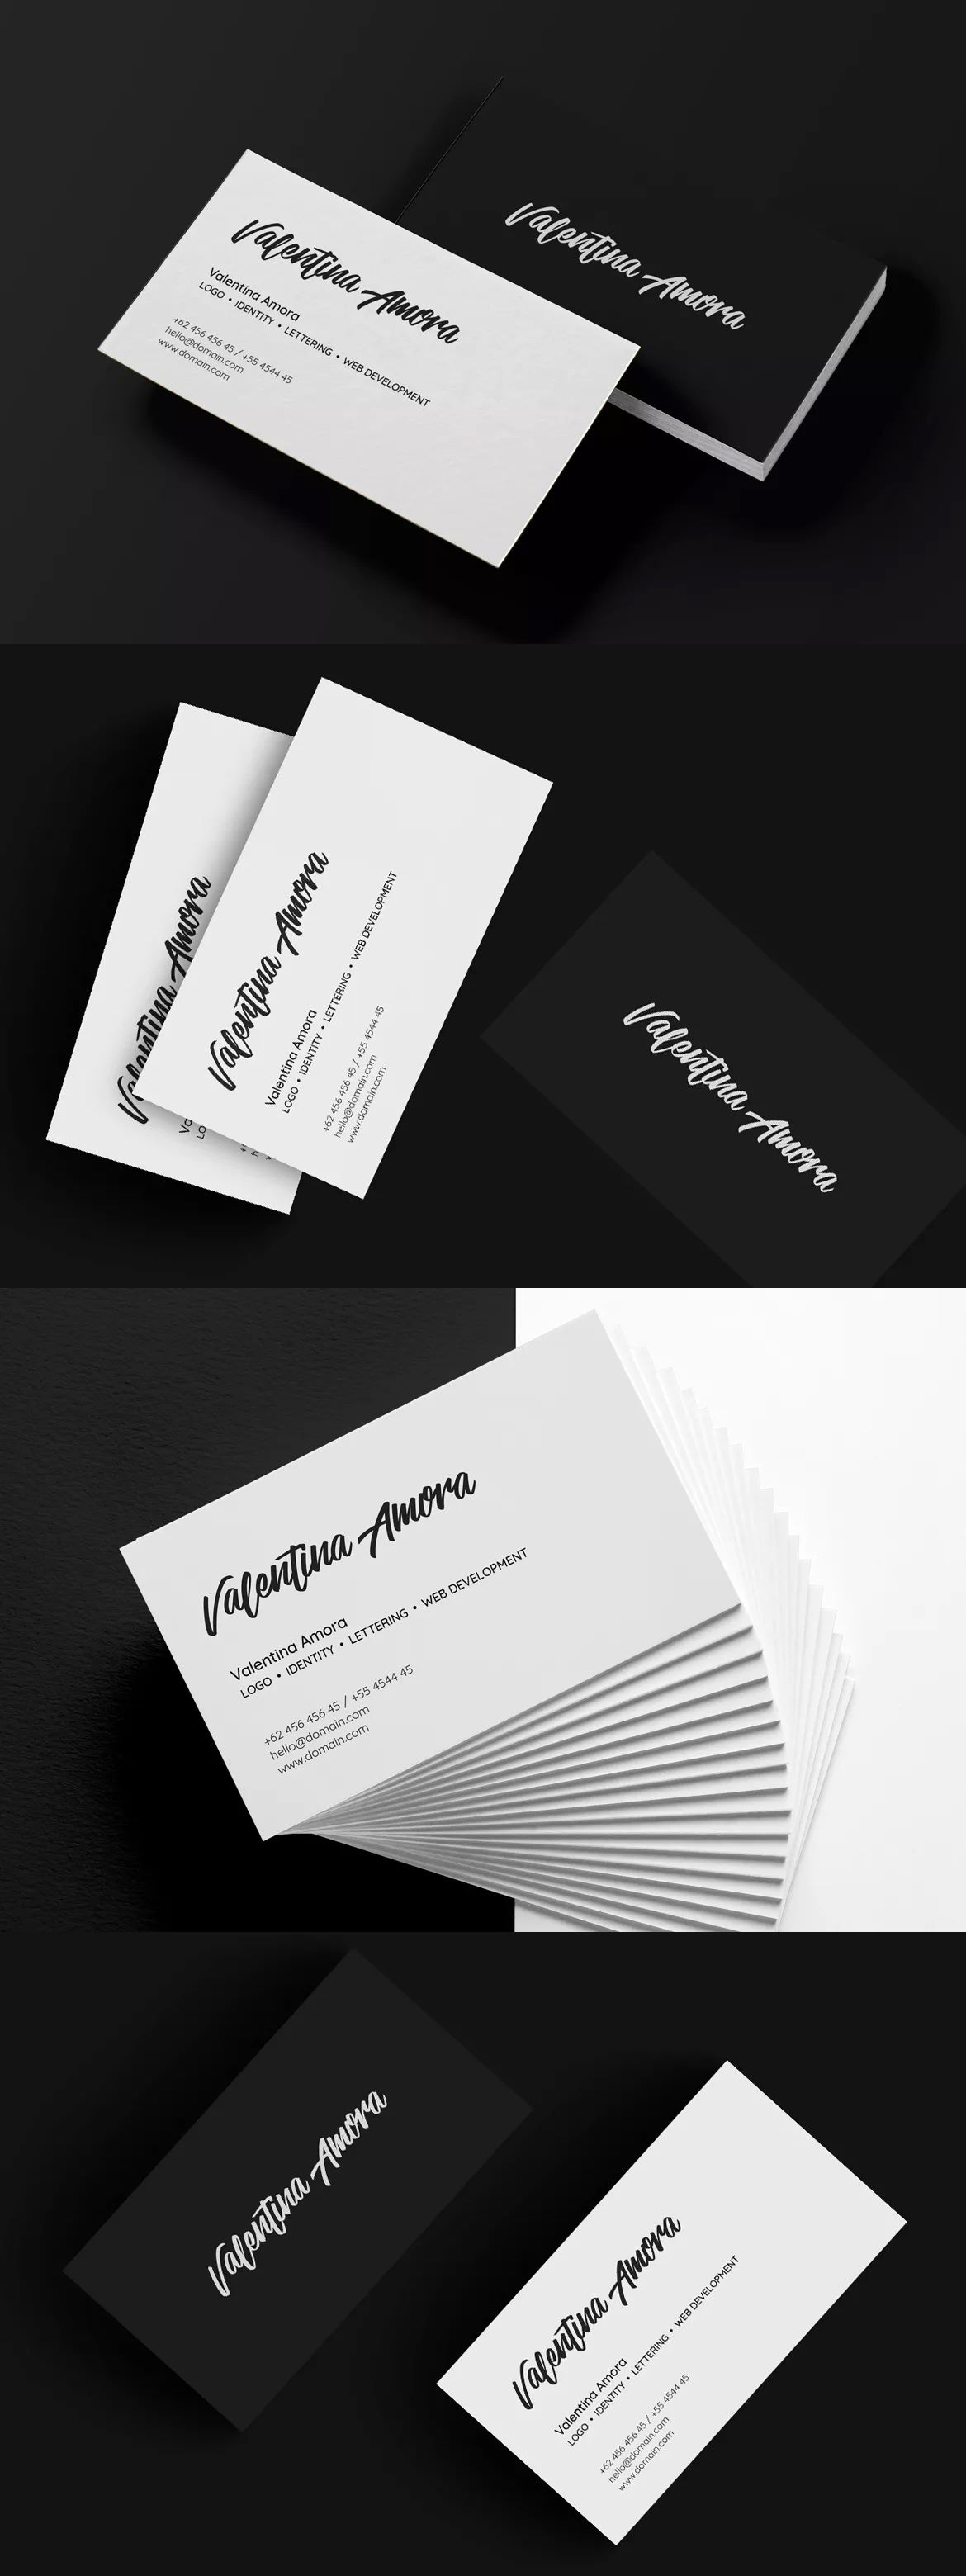 Minimal freelance business card template psd business card minimal freelance business card template psd wajeb Image collections